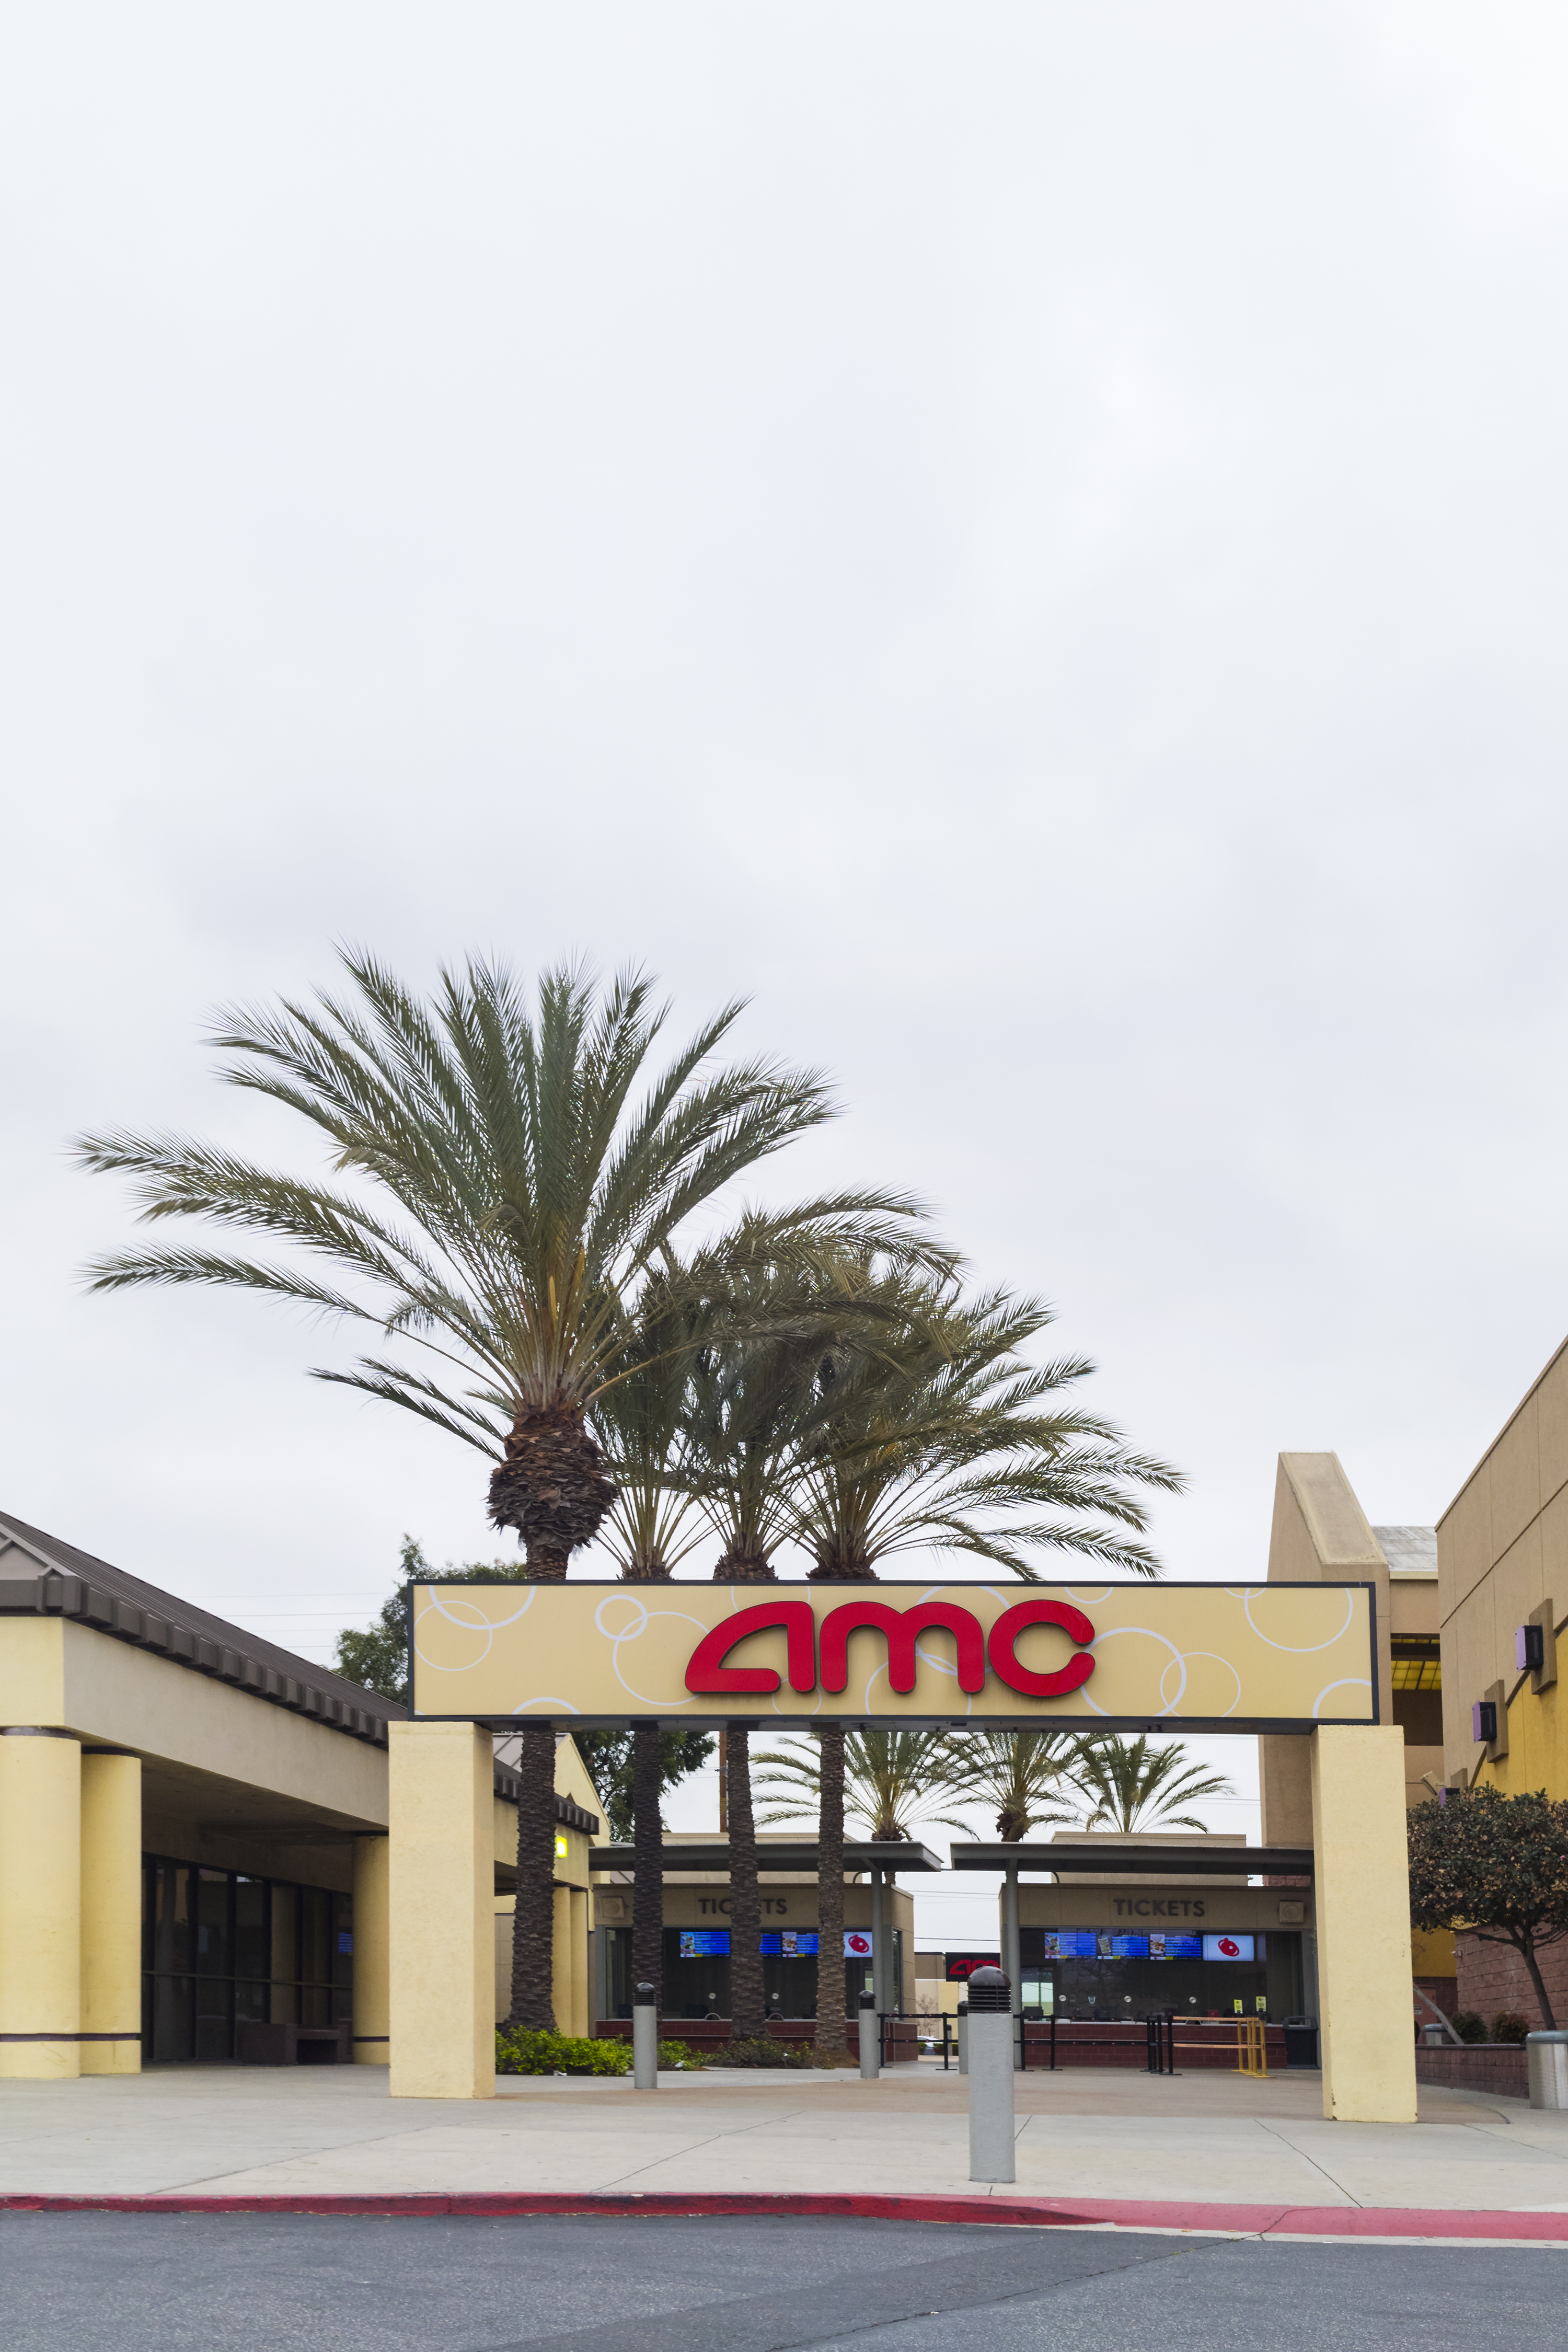 Fullerton, California, USA - April 3, 2018: AMC theatre entrance sign in Fullerton, California. AMC Cinemas is the largest movie theater chain in the world, and also the largest in the United States.